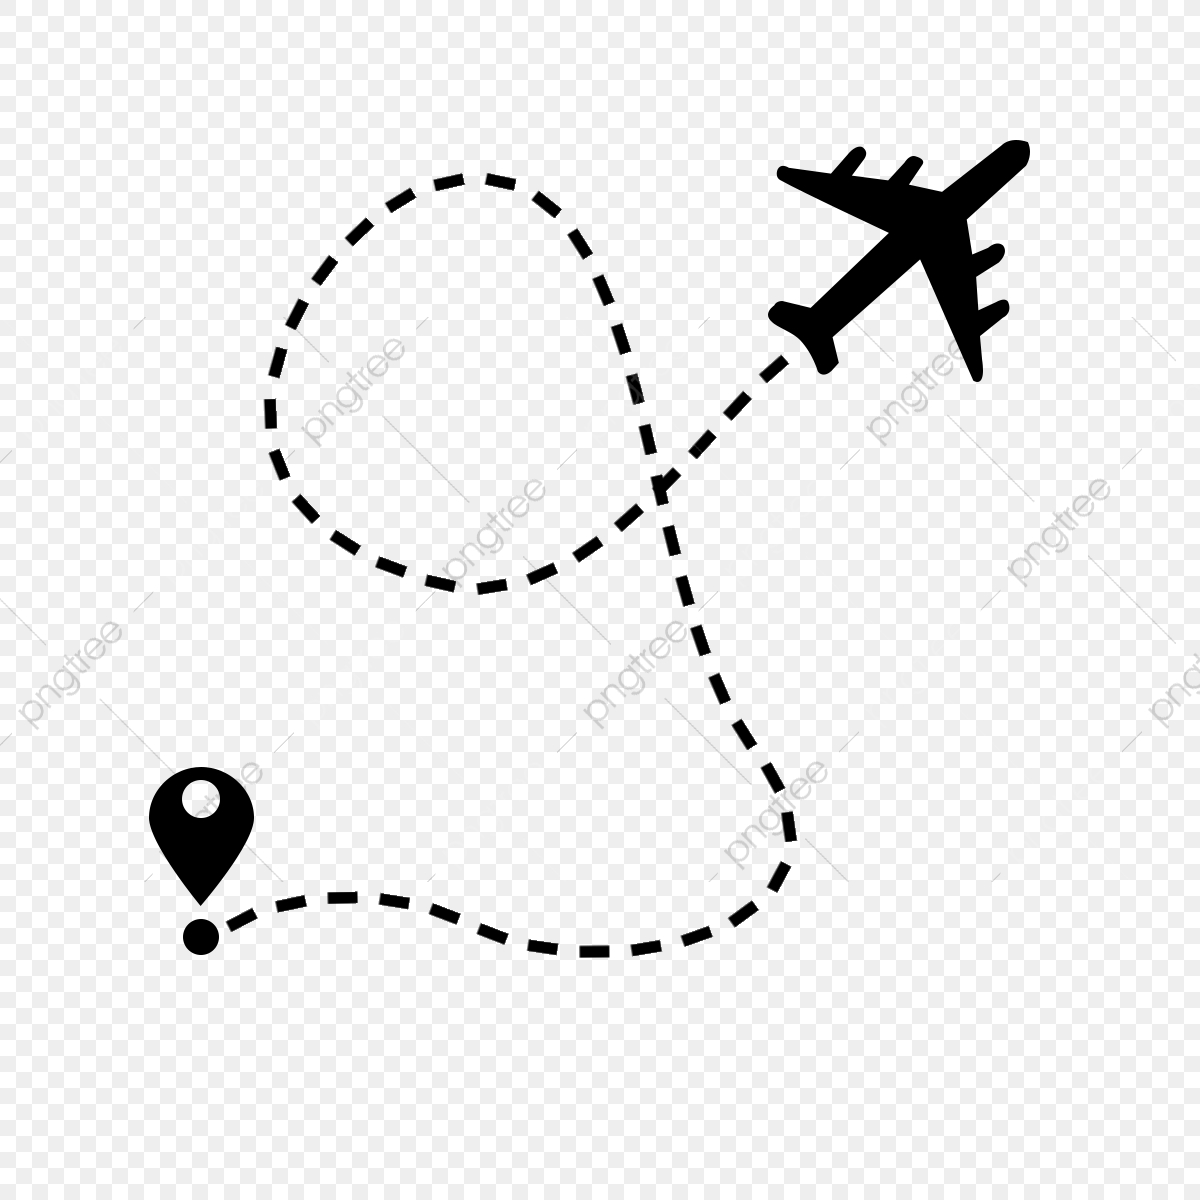 Air route with start. Clipart plane flight